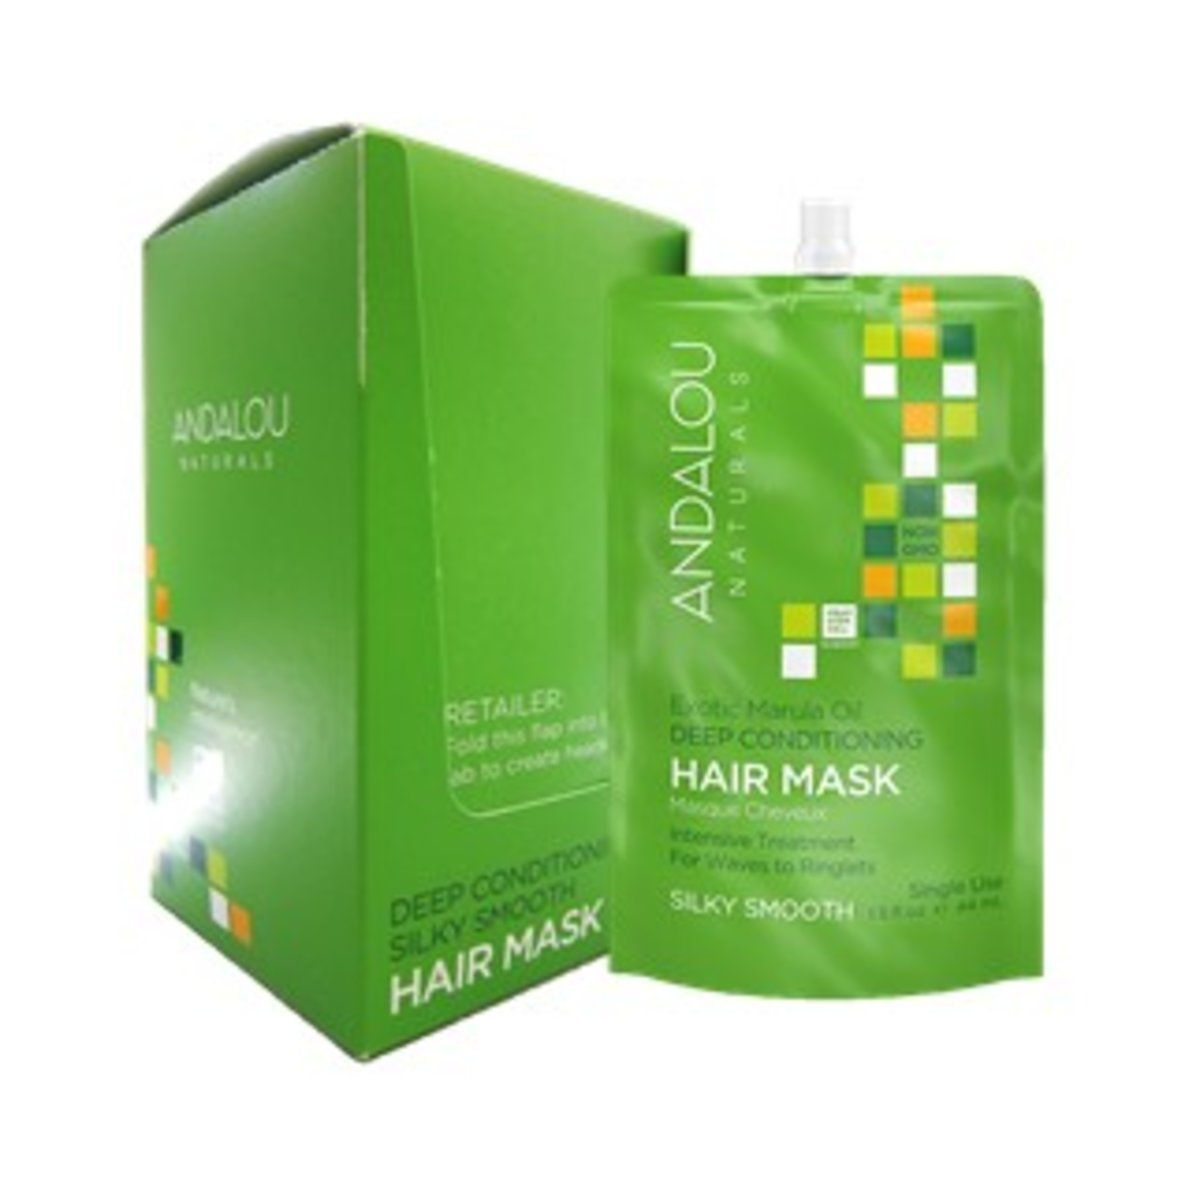 Andalou Exotic Marula Oil Silky Smooth Hair Mask ( set of 6)